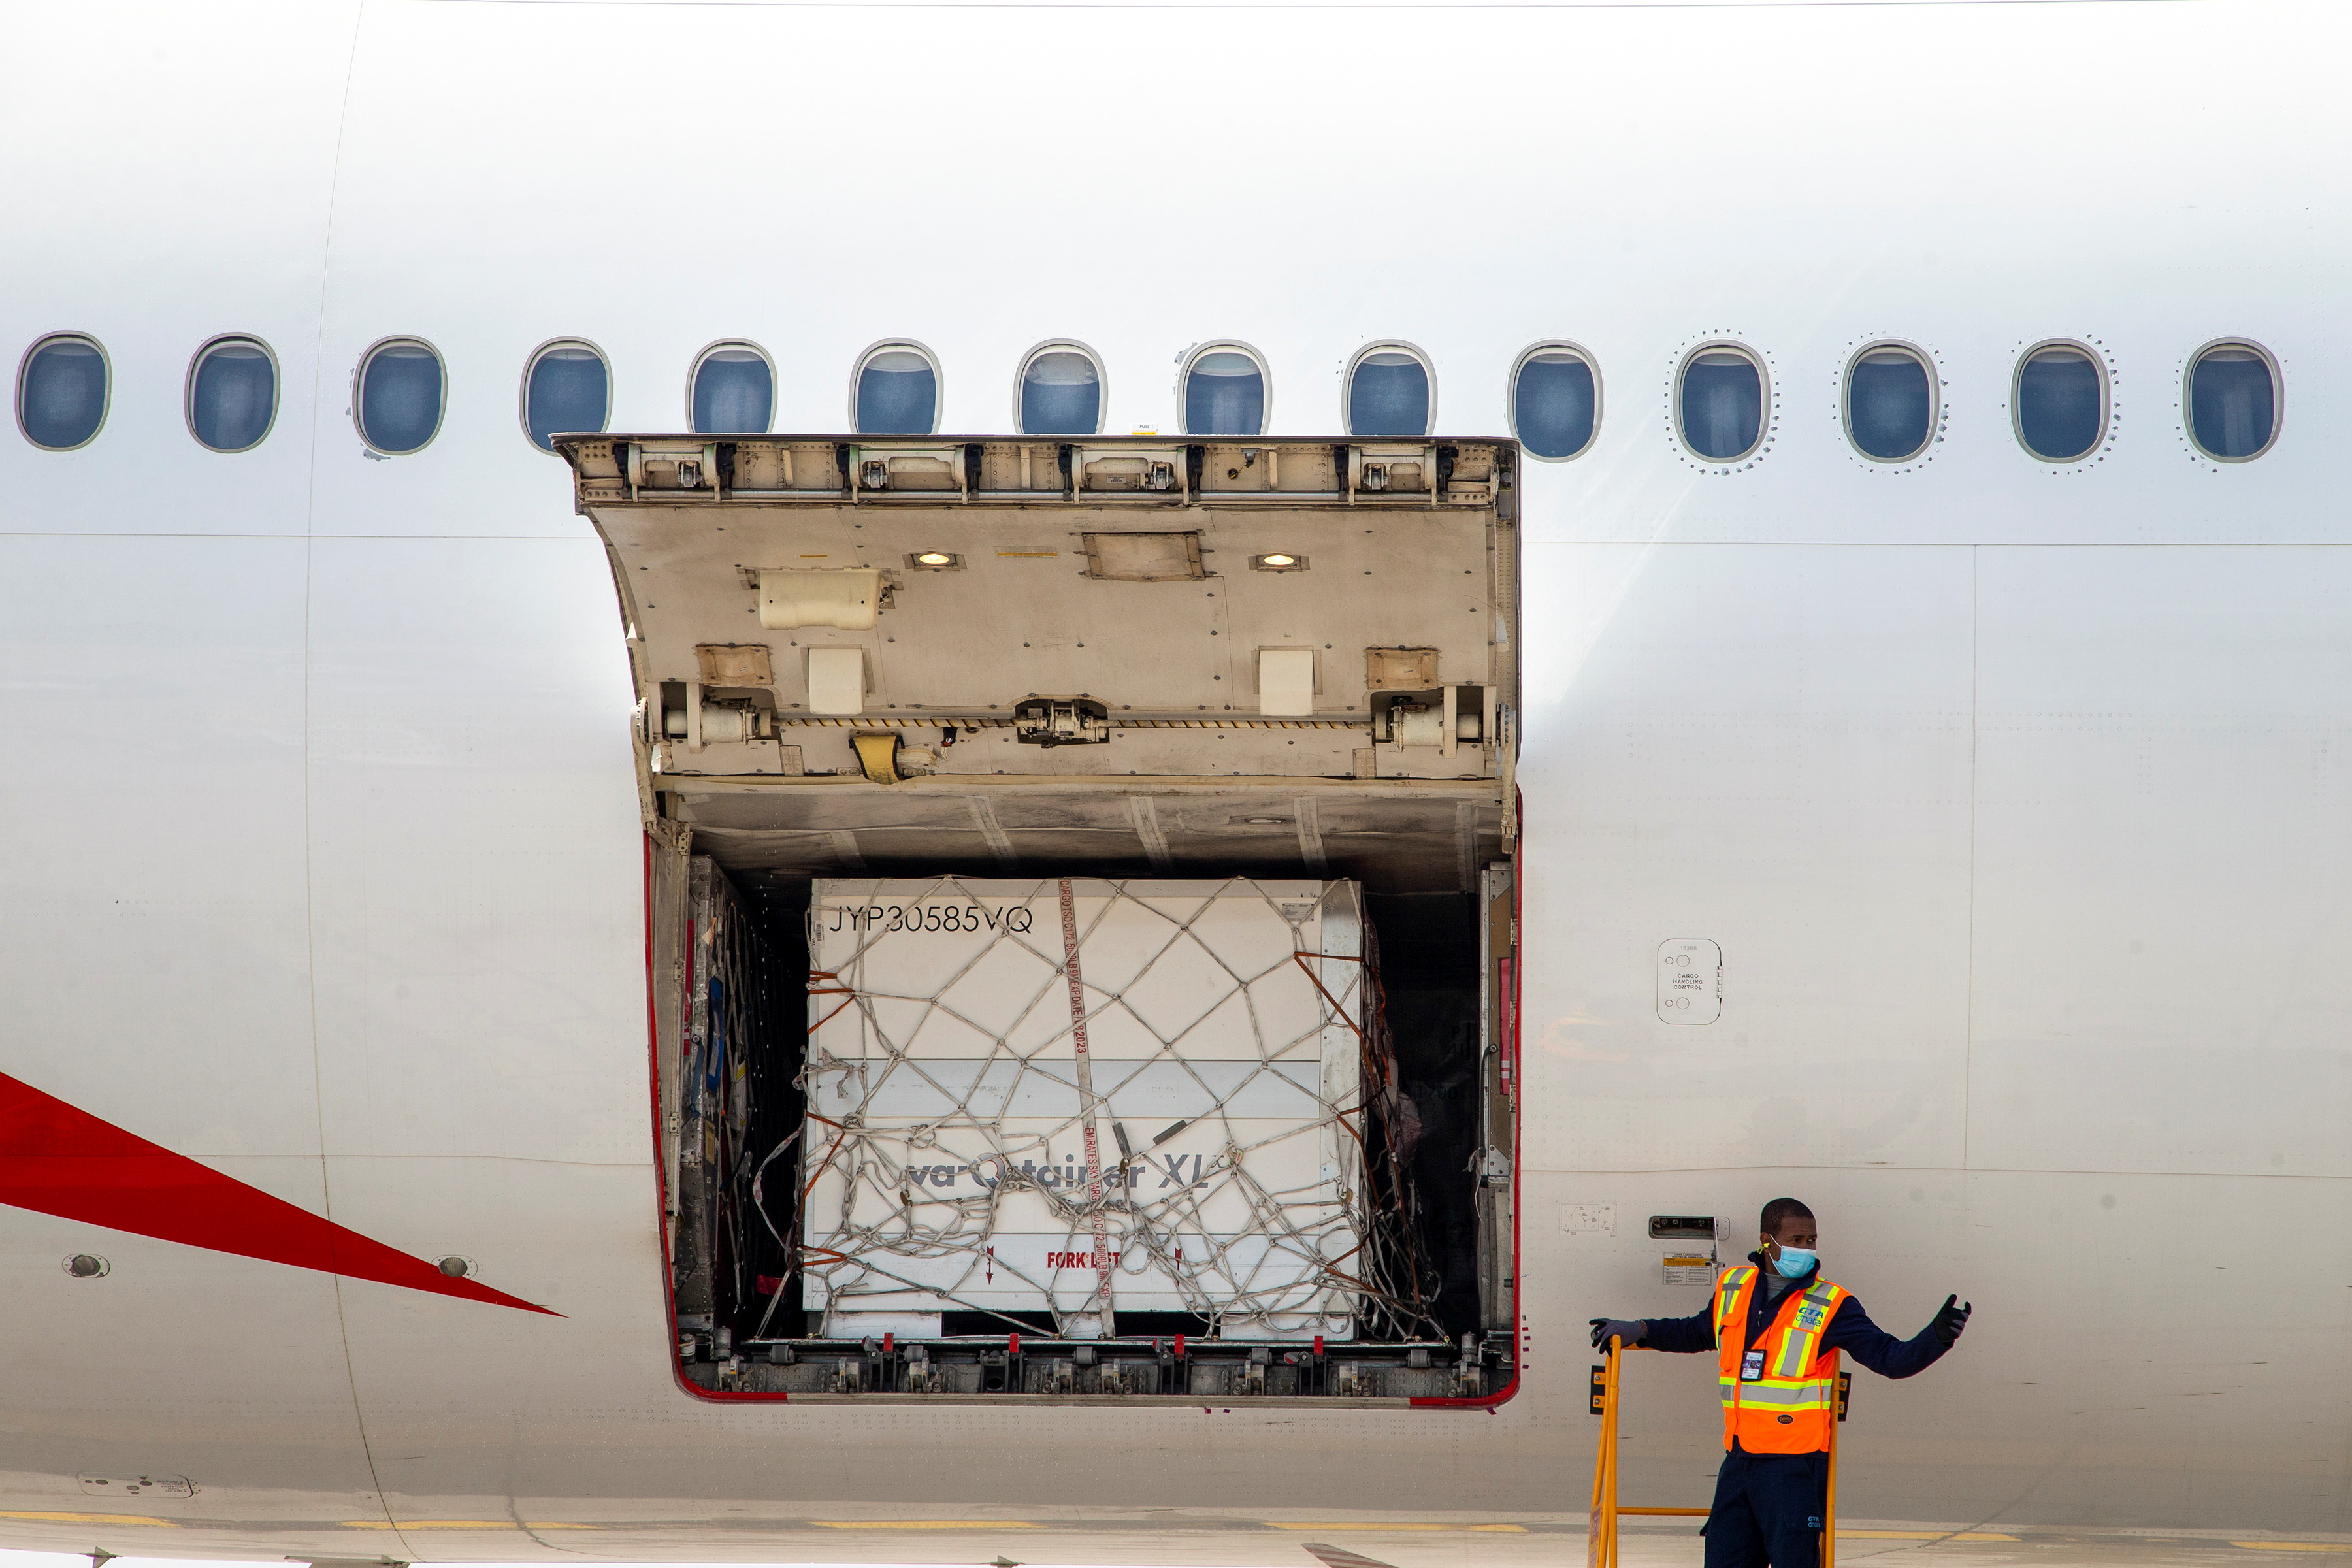 Ground crew unload a shipment from South Africa of the Johnson & Johnson vaccine against the coronavirus disease (COVID-19) at Toronto Pearson Airport in Mississauga, Ontario, Canada April 28, 2021. REUTERS/Carlos Osorio